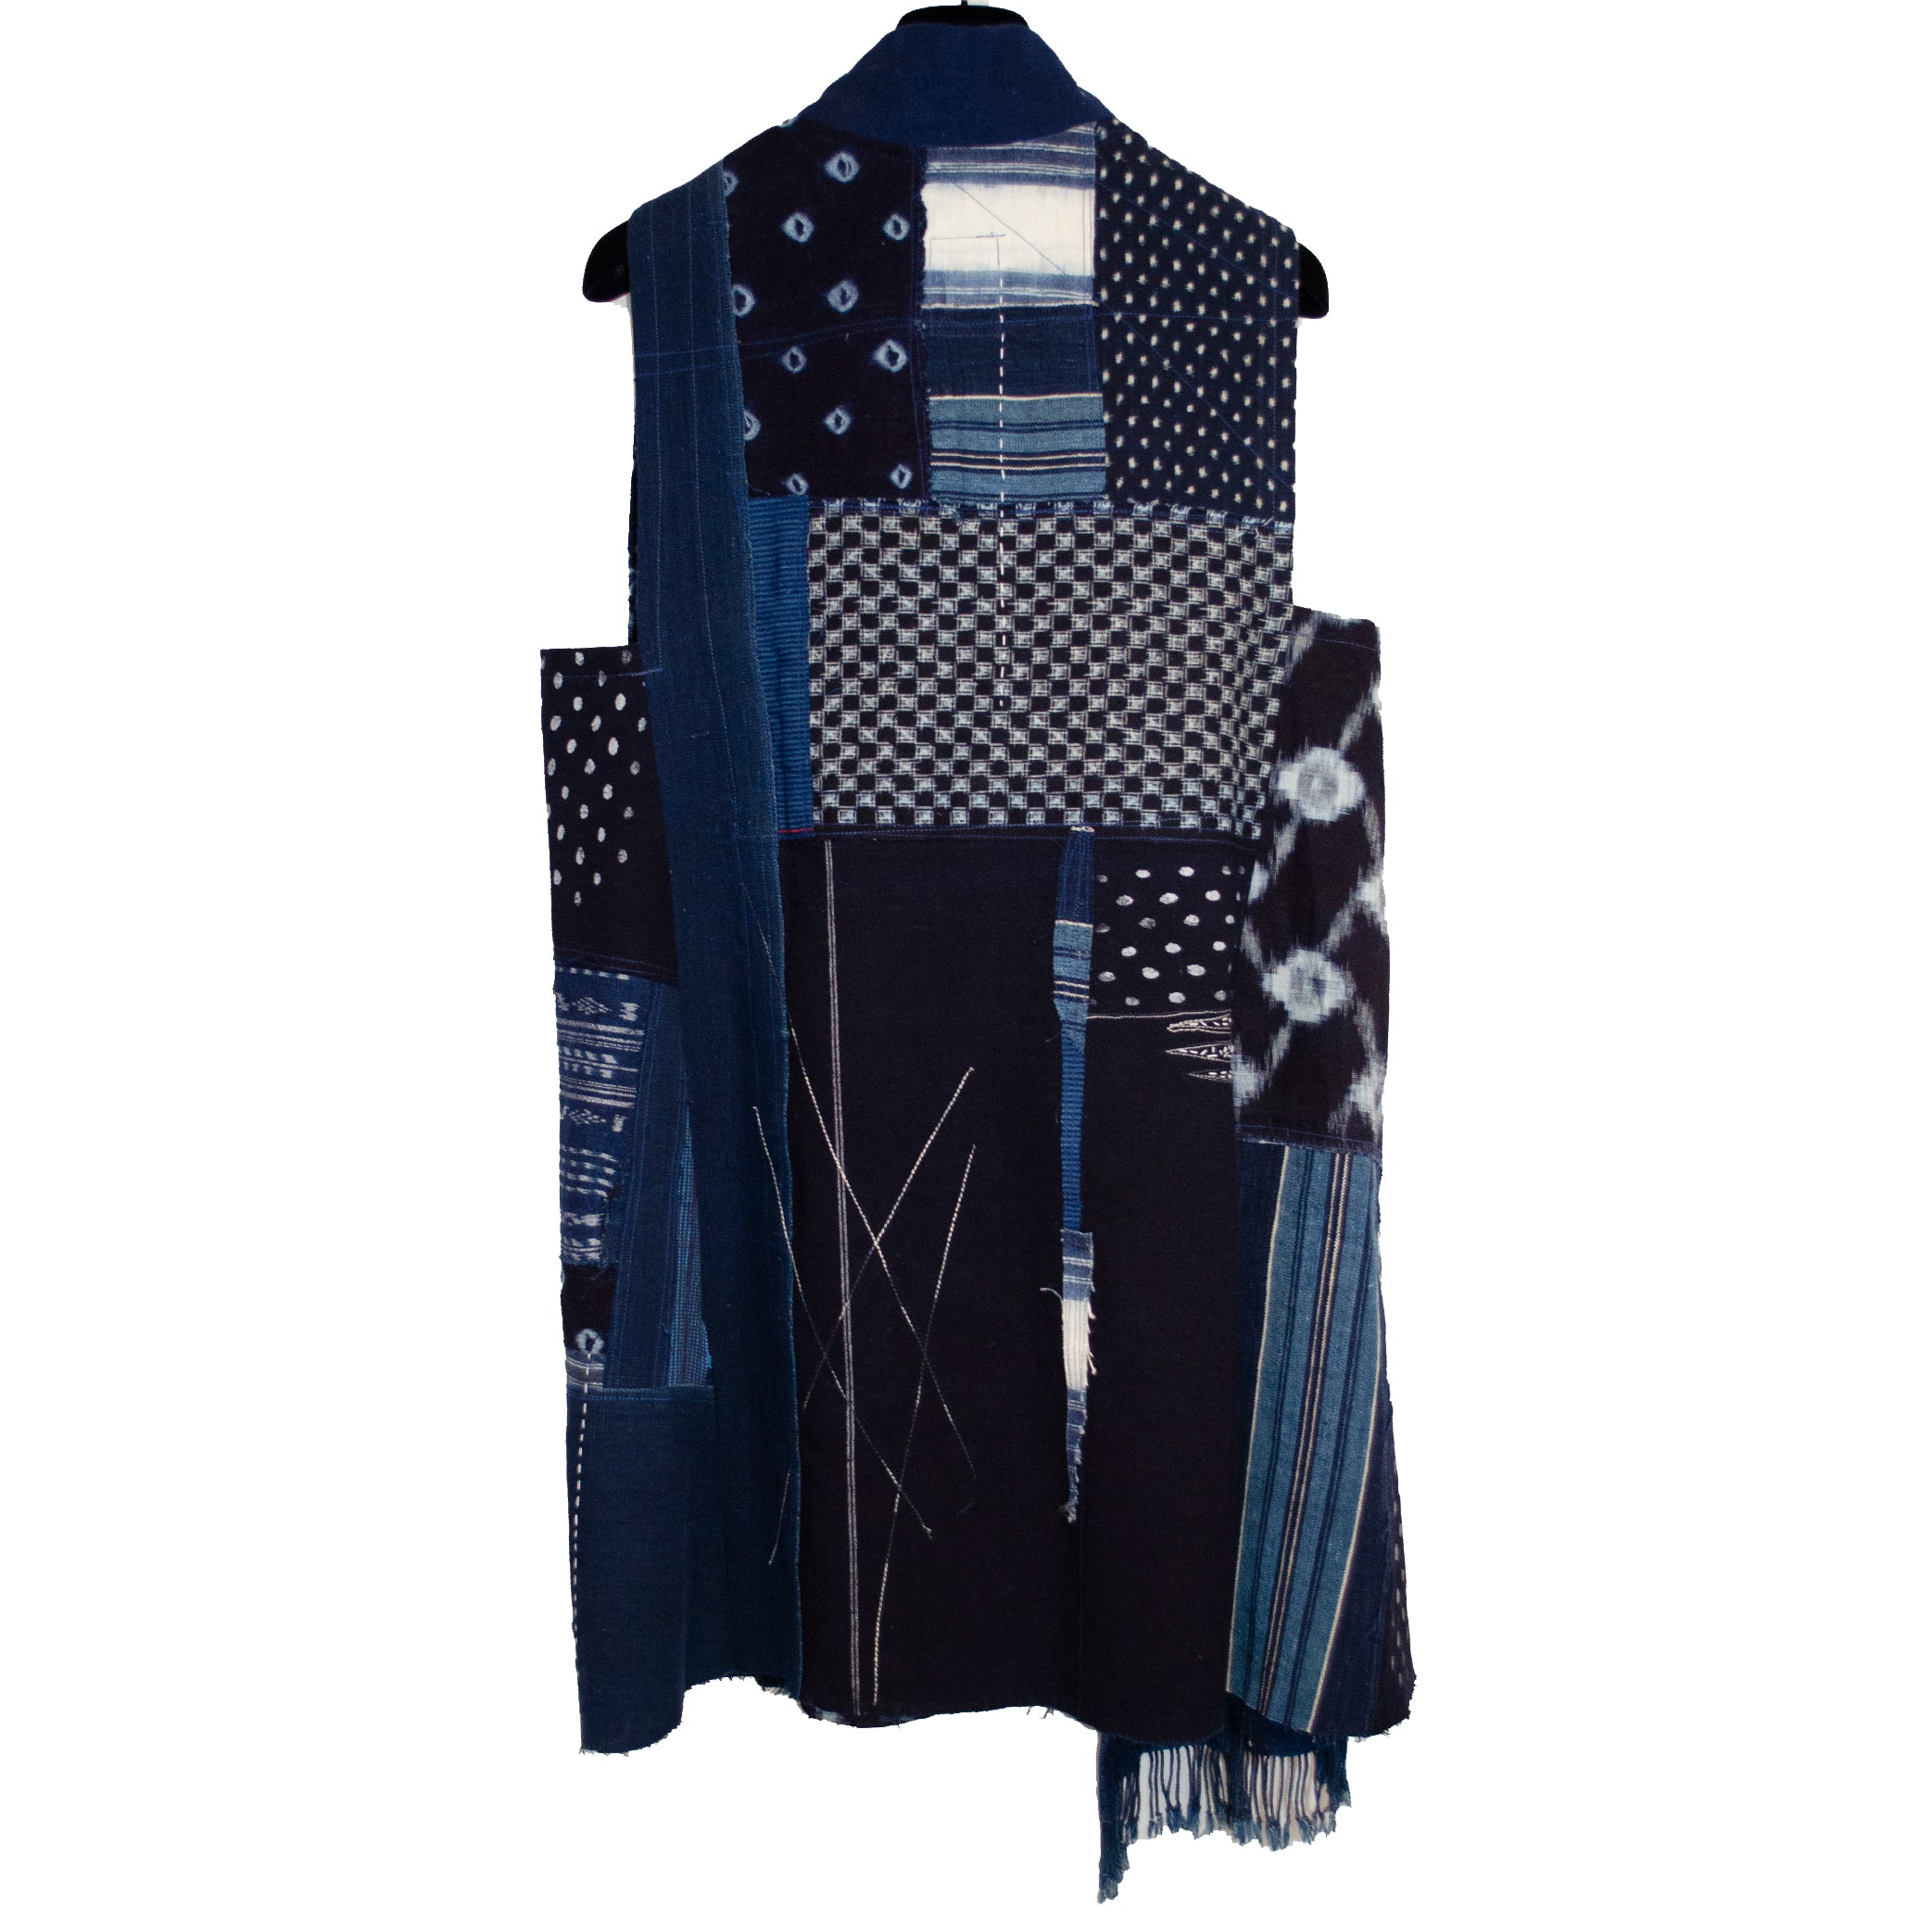 Holly Badgley Vest, Indigo, M/L